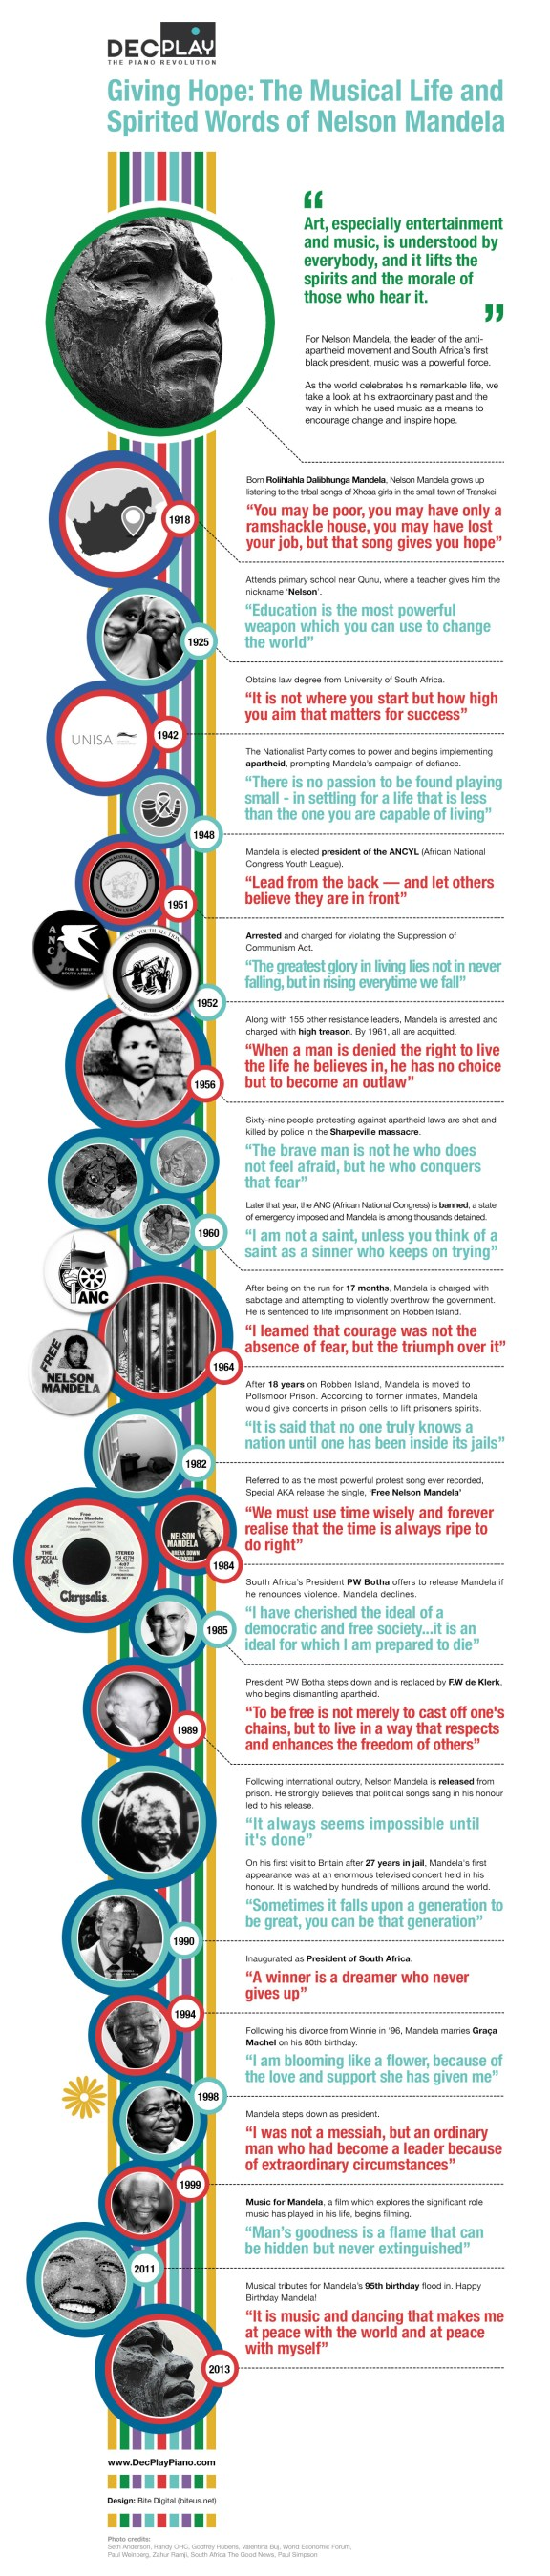 the-musical-life-and-spirited-words-of-nelson-mandela_infographic